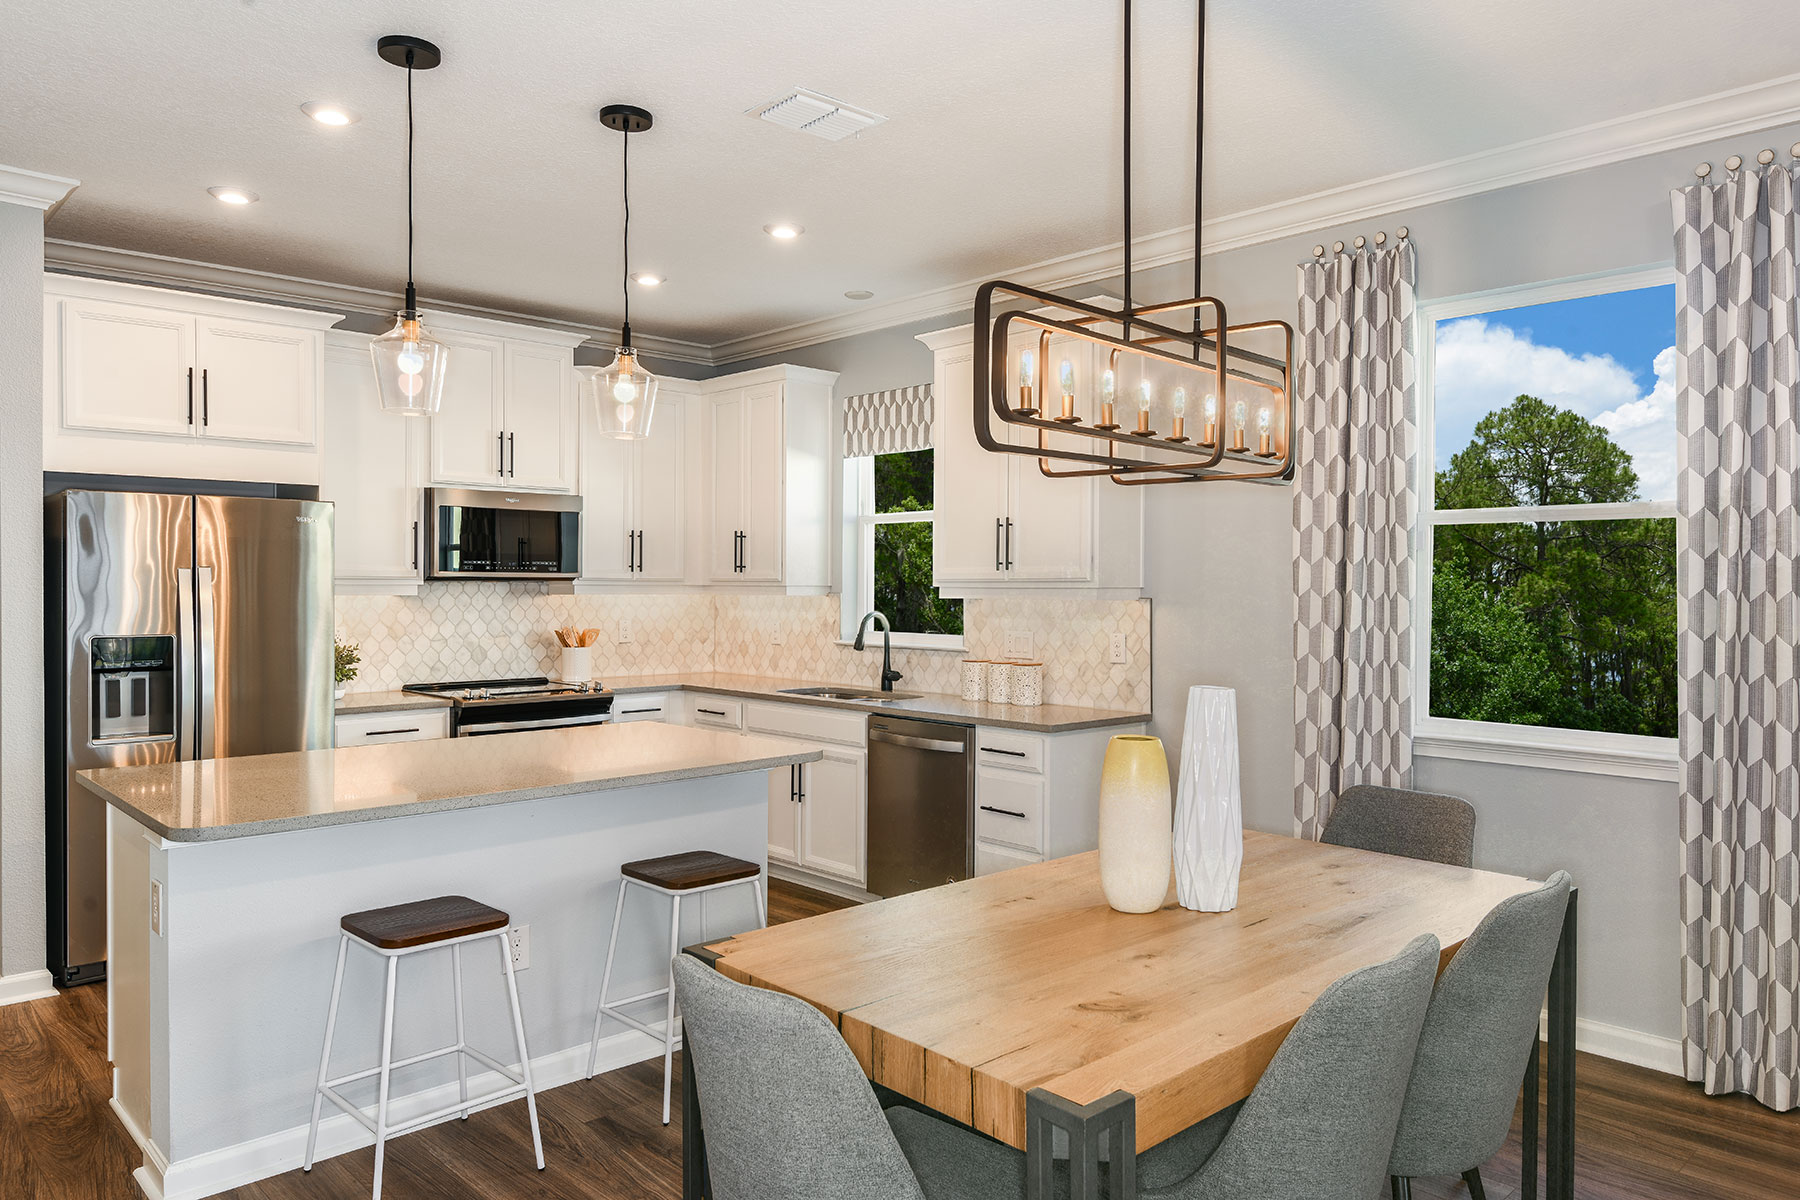 Amelia II Plan Dining at Parkview at Long Lake Ranch in Lutz Florida by Mattamy Homes